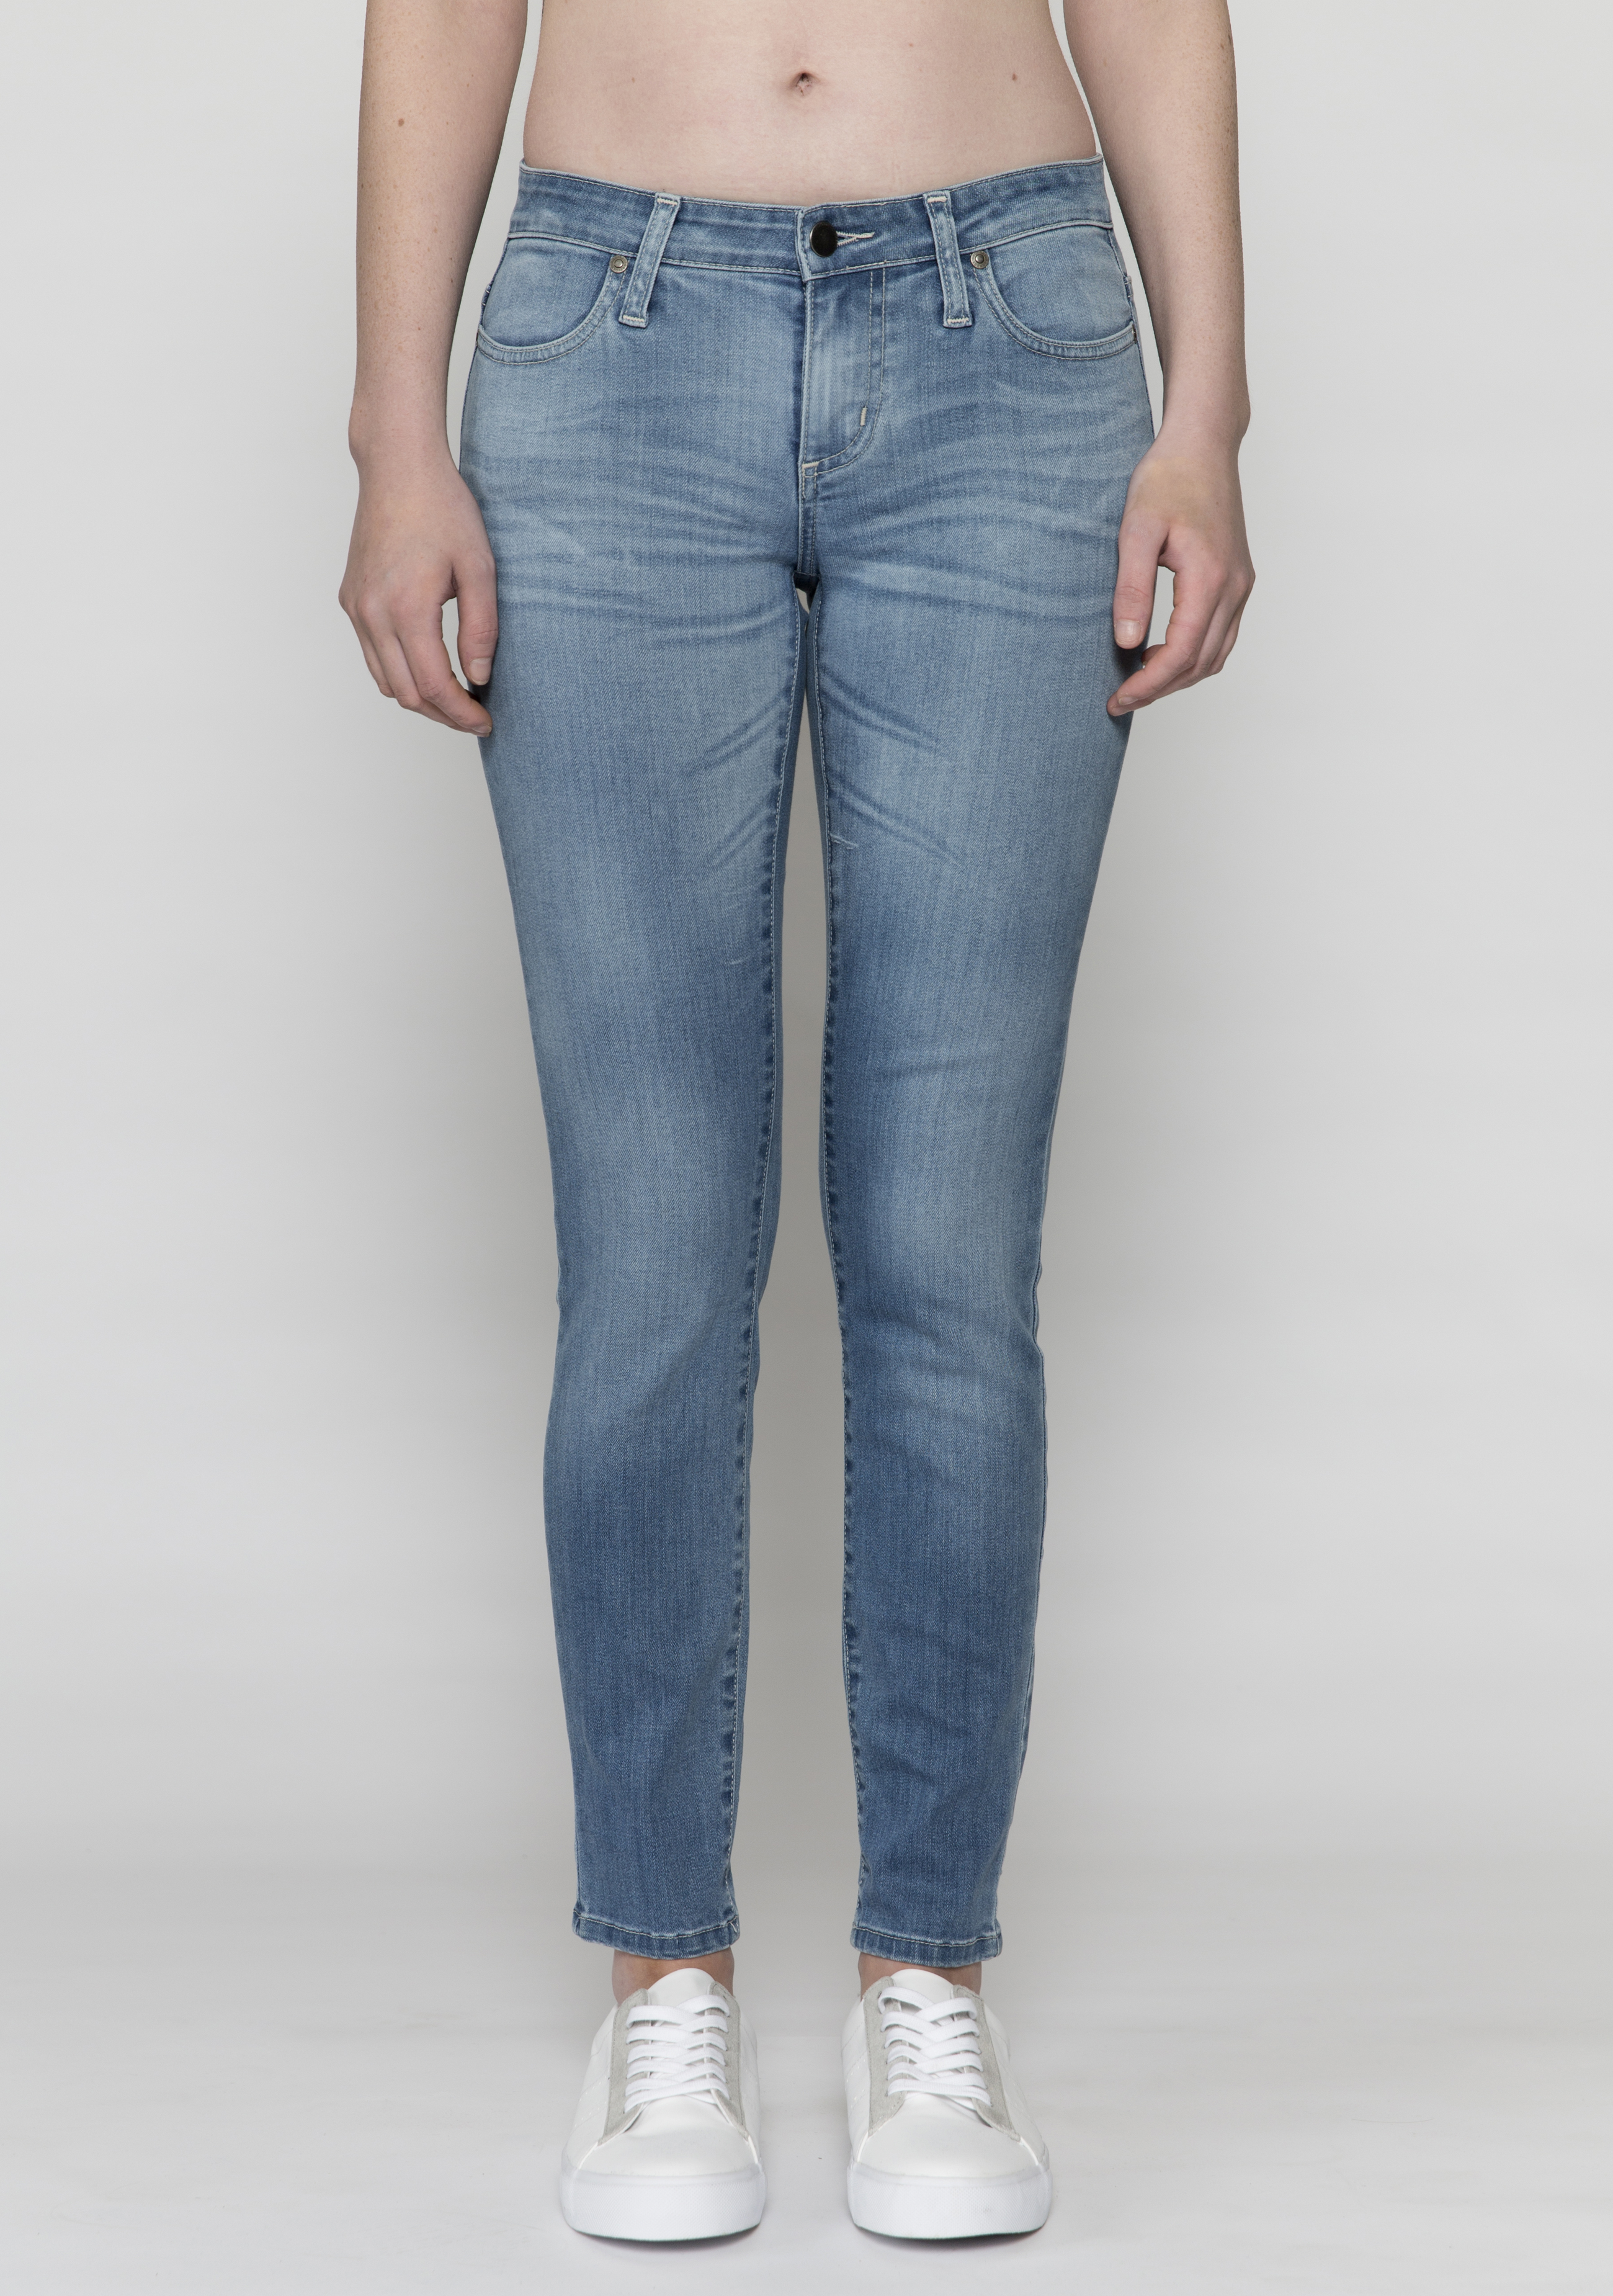 High waisted skinny jeans melbourne